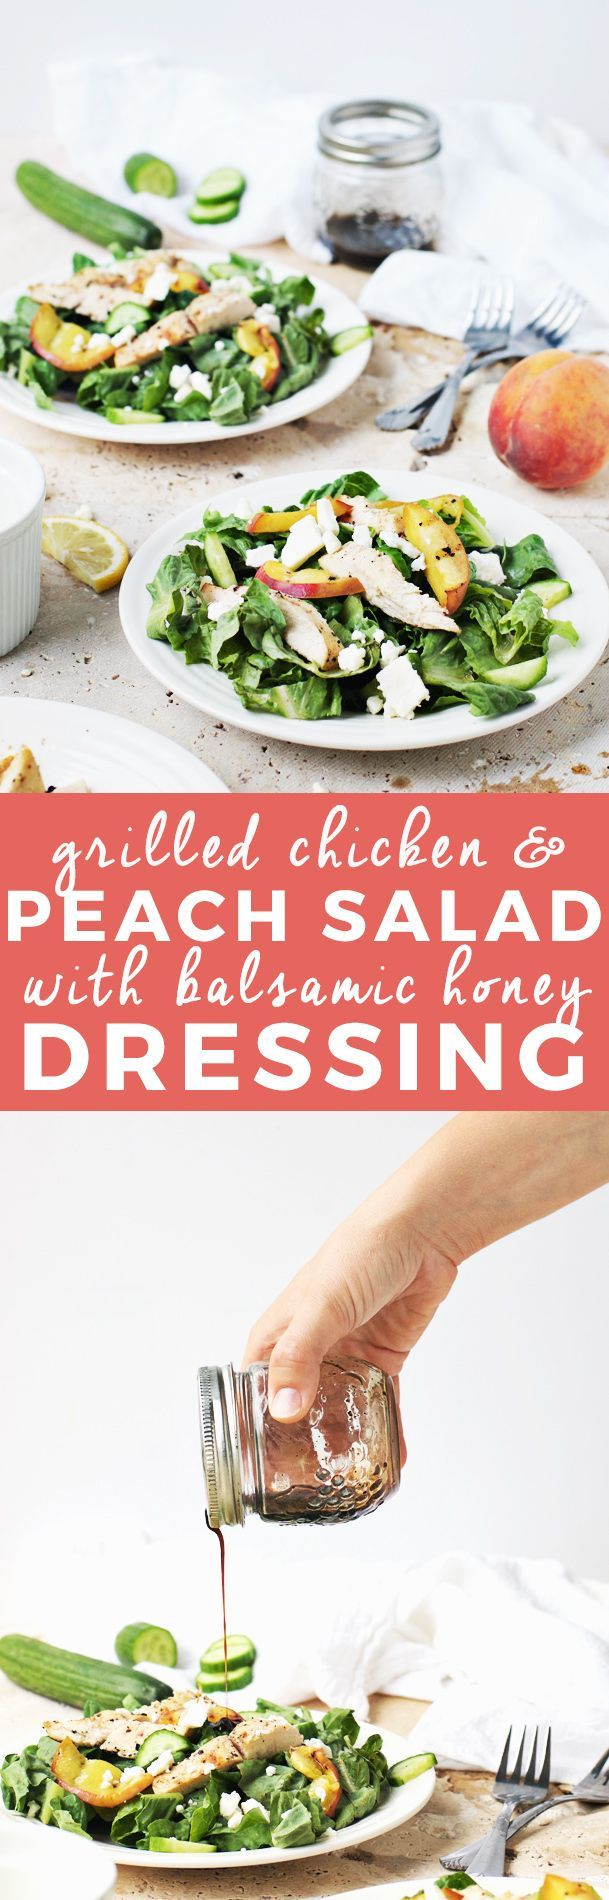 Juicy Grilled Peach and Chicken Salad with Balsamic Honey Dressing | summer salad recipes, homemade salad recipes, fresh salad recipes, healthy dinner recipes, healthy salad recipes, easy salad recipes, recipes using grilled peaches || The Butter Half via @thebutterhalf